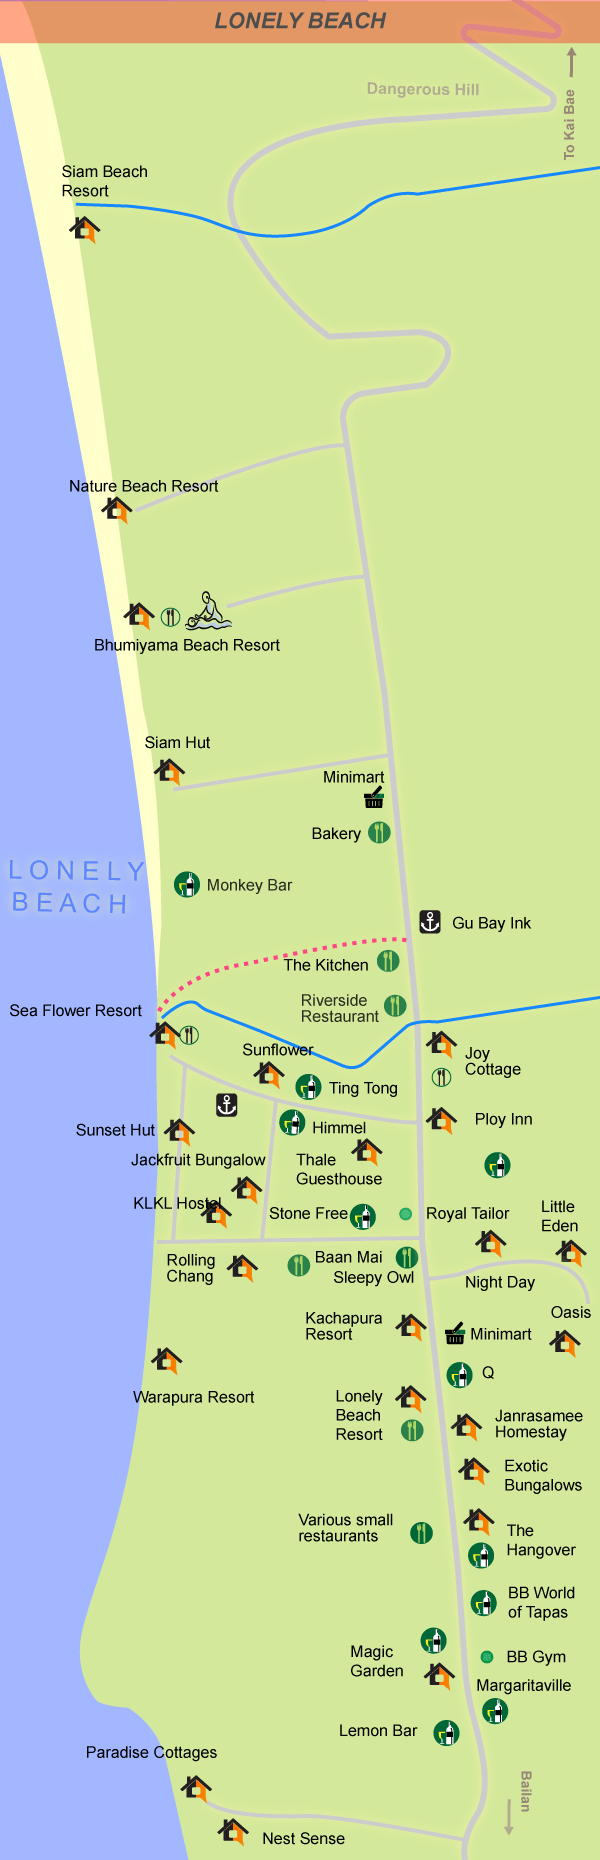 Detailed map of the beach and area